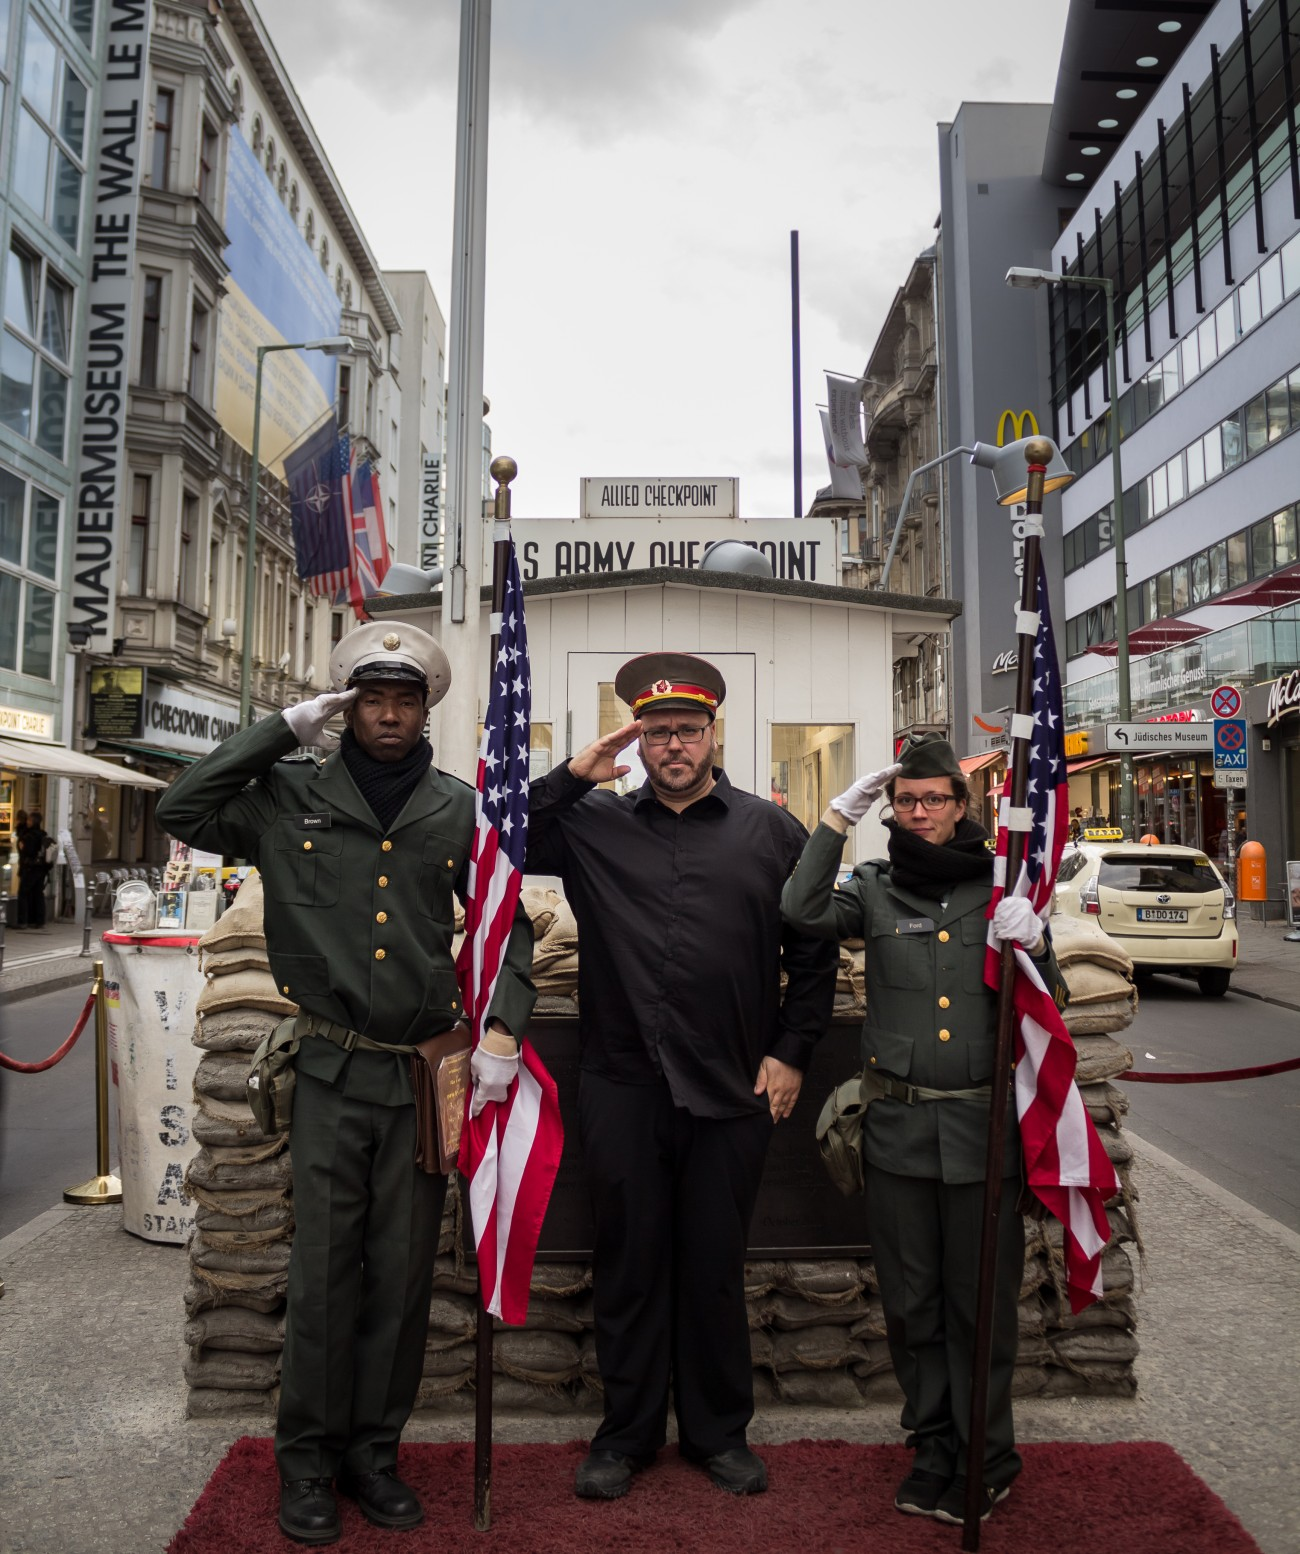 Steve Giasson. Performance invisible n° 114 (Passer à l'Est). Performeurs : Steve Giasson et deux performeurs anonymes. Crédit photographique : Martin Vinette. Checkpoint Charlie, Berlin. 14 mai 2016.